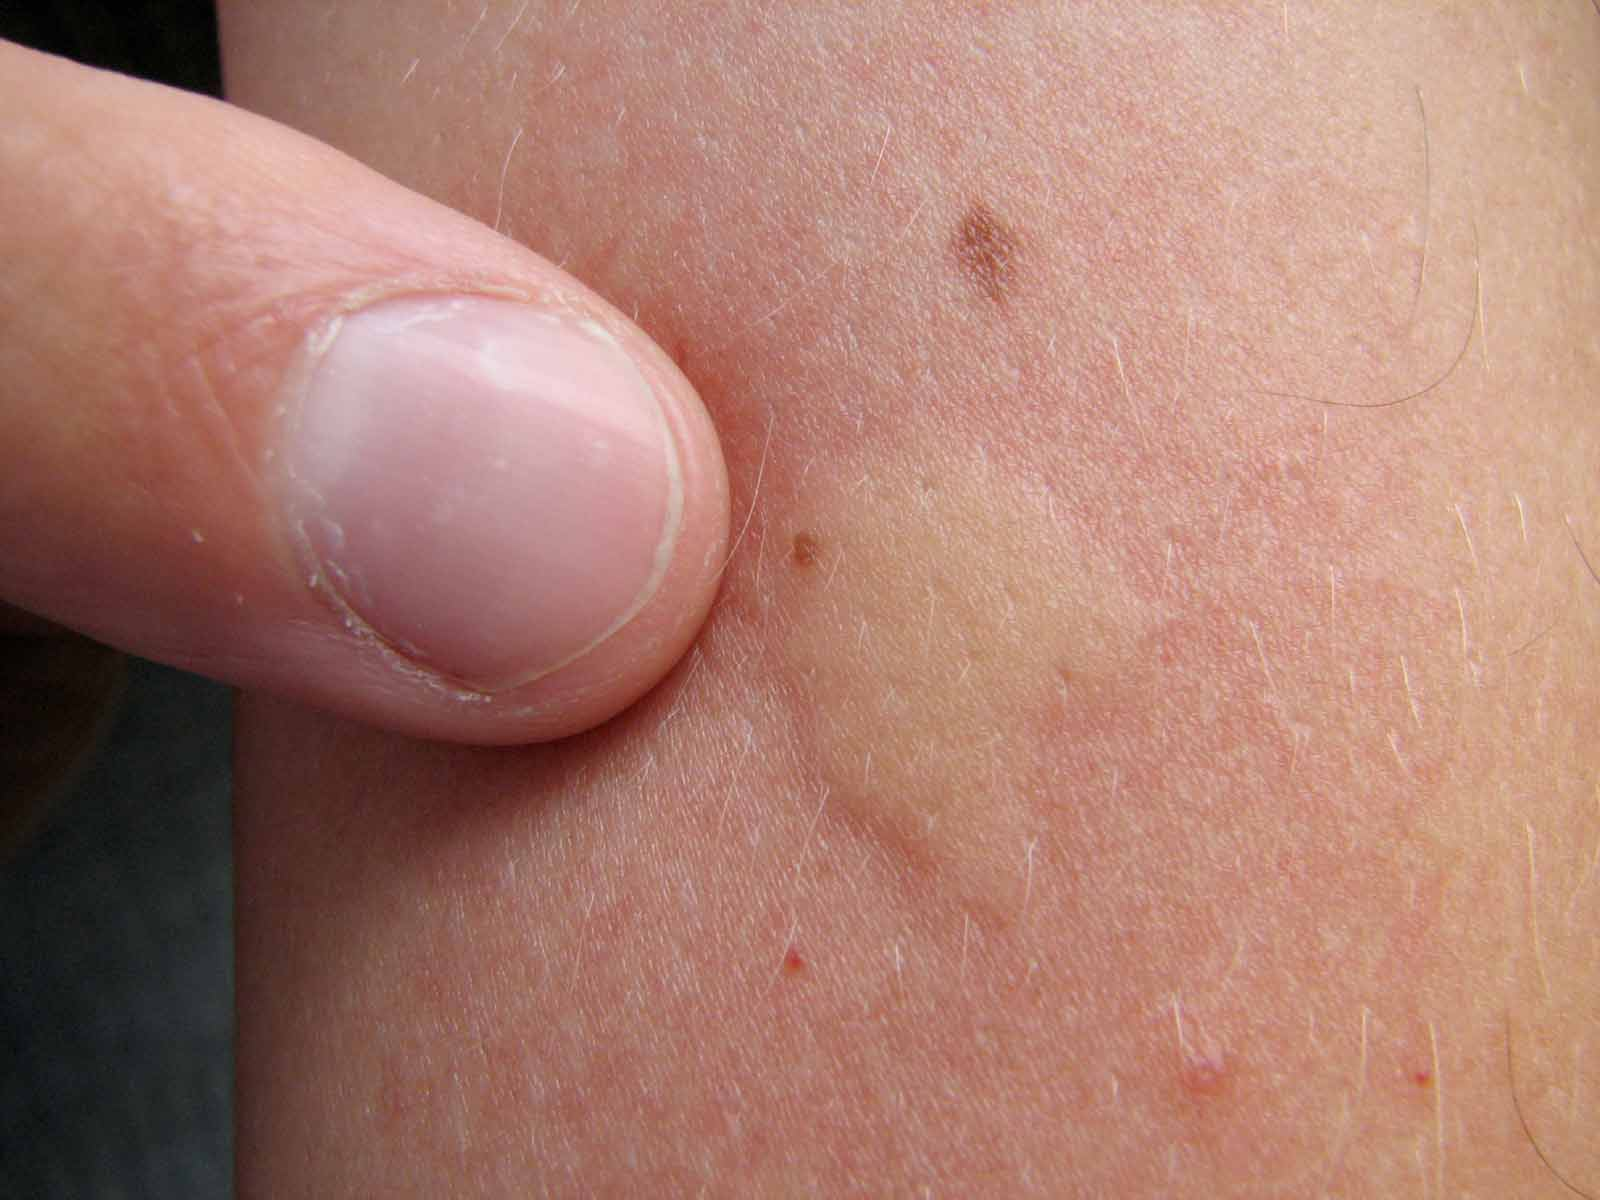 Mosquito saliva causes an immune system reaction, which results in a bump.